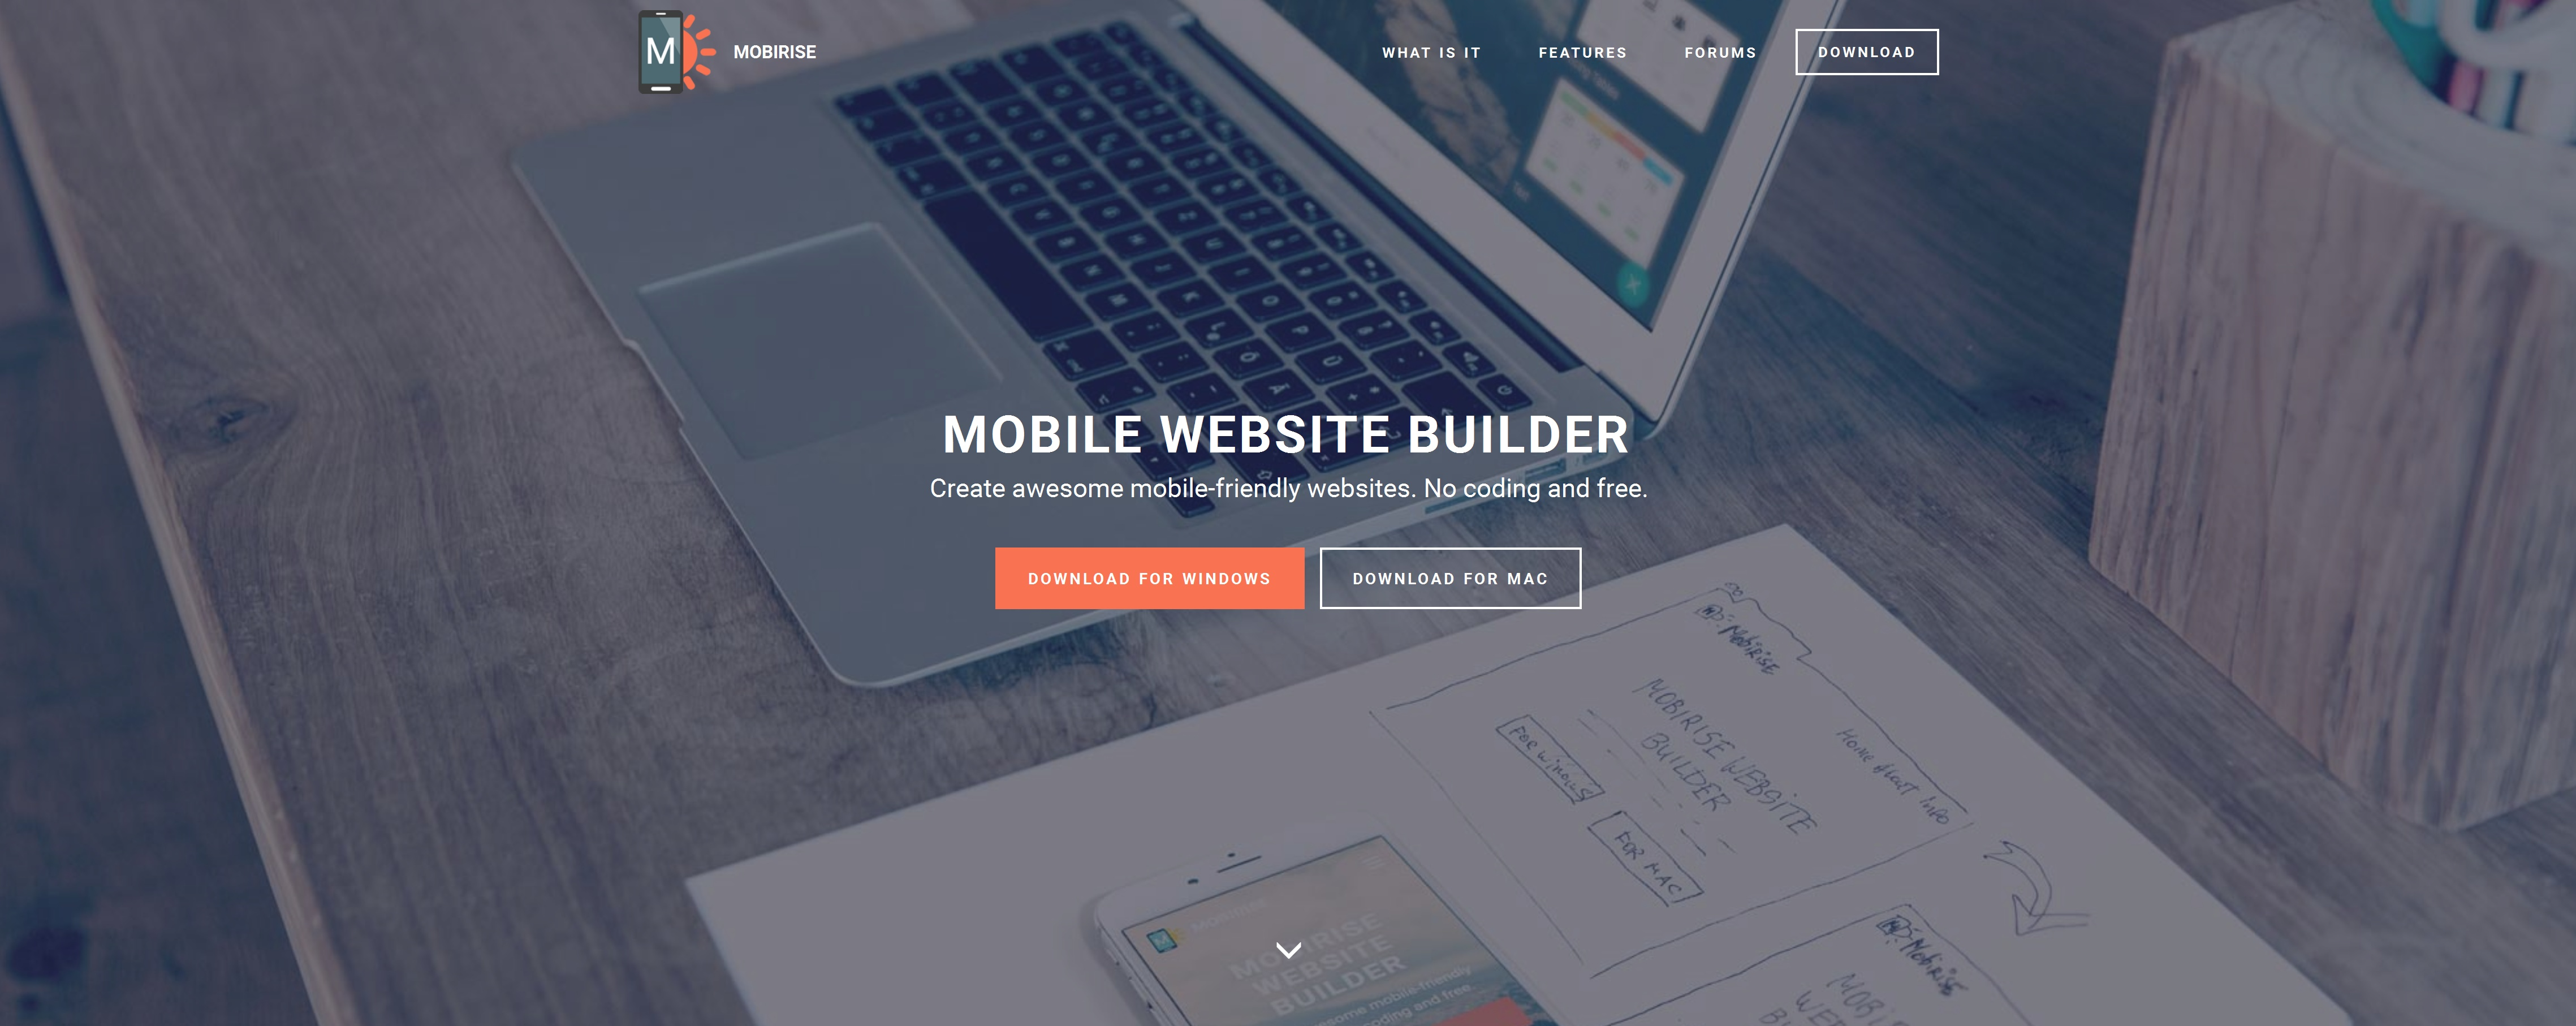 Mobile Website Generator Review